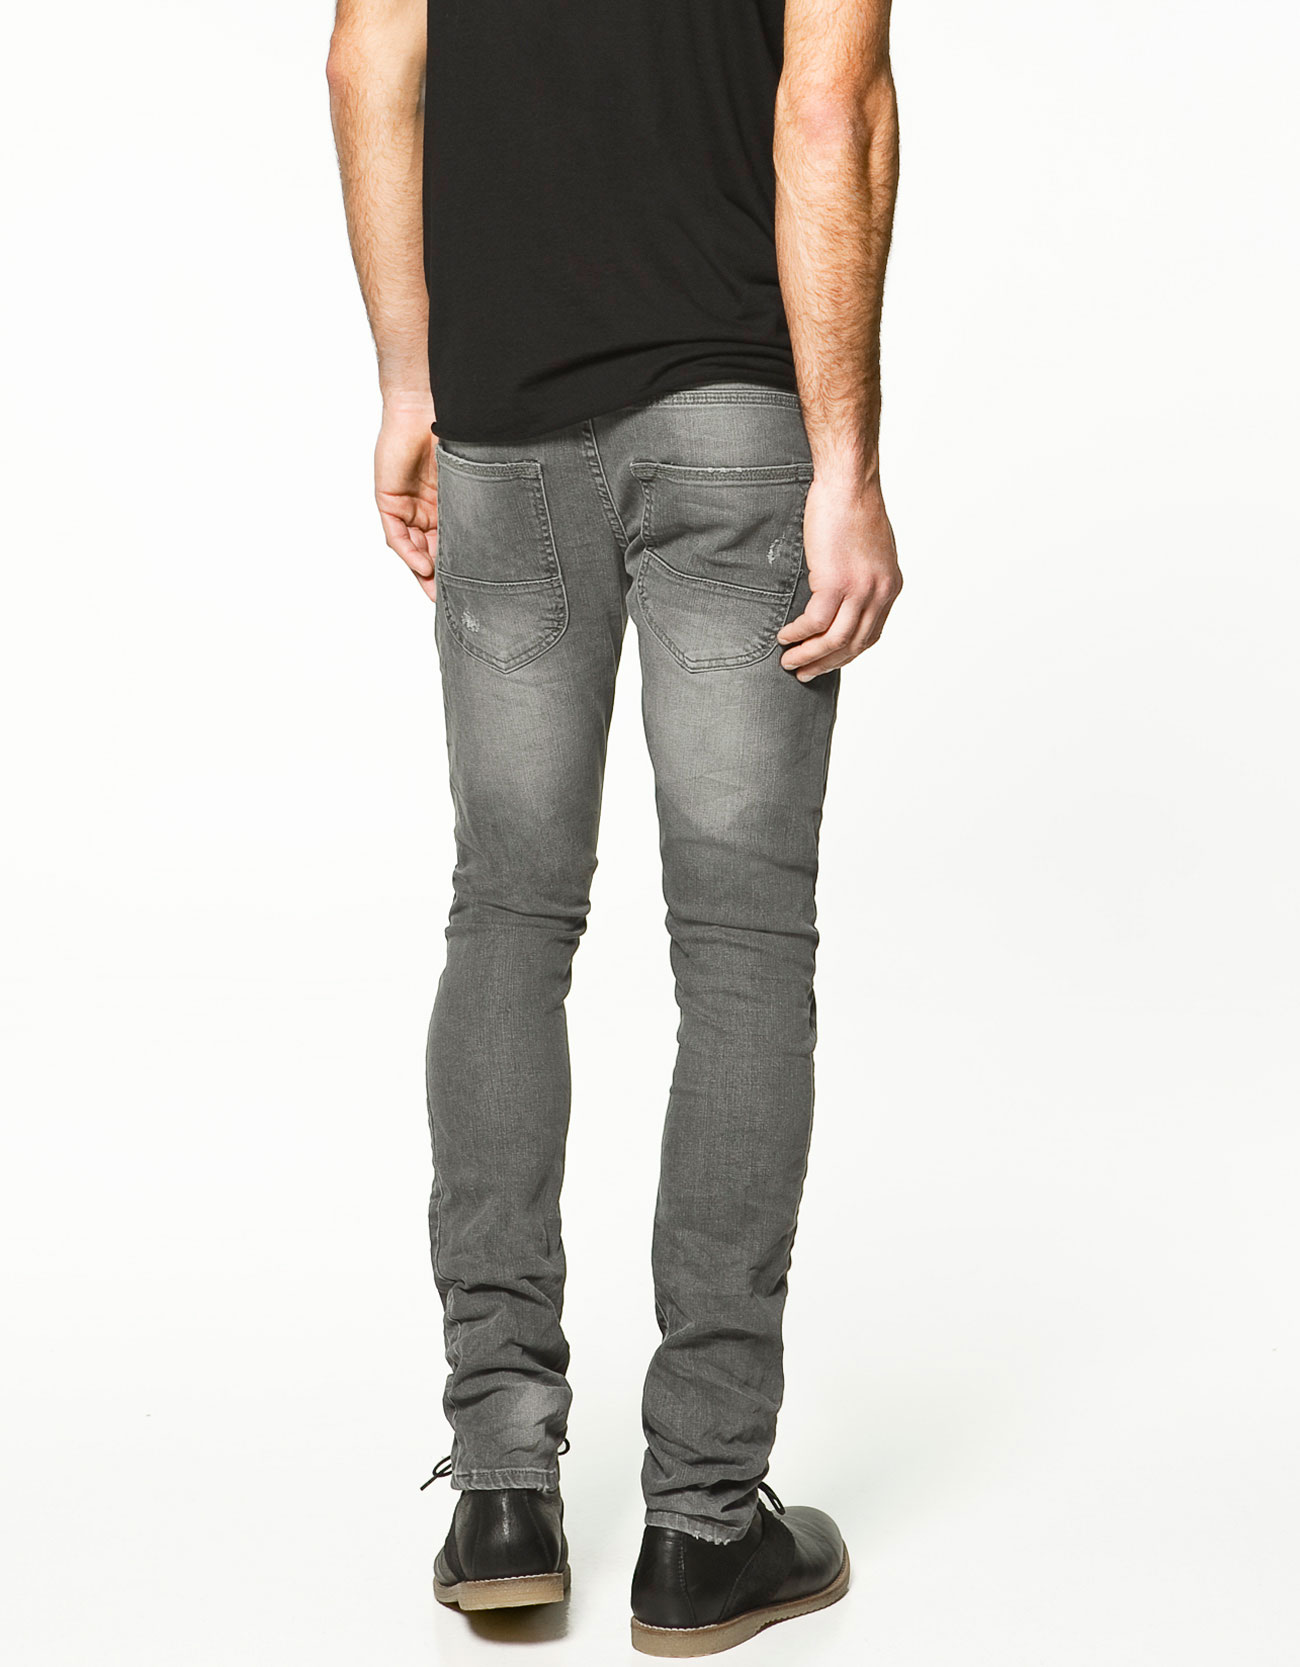 Men also can access all kinds of clothing and accessories necessary to accompany the clothes. Skinny ripped jeans are extremely hard and complicated when wearing.